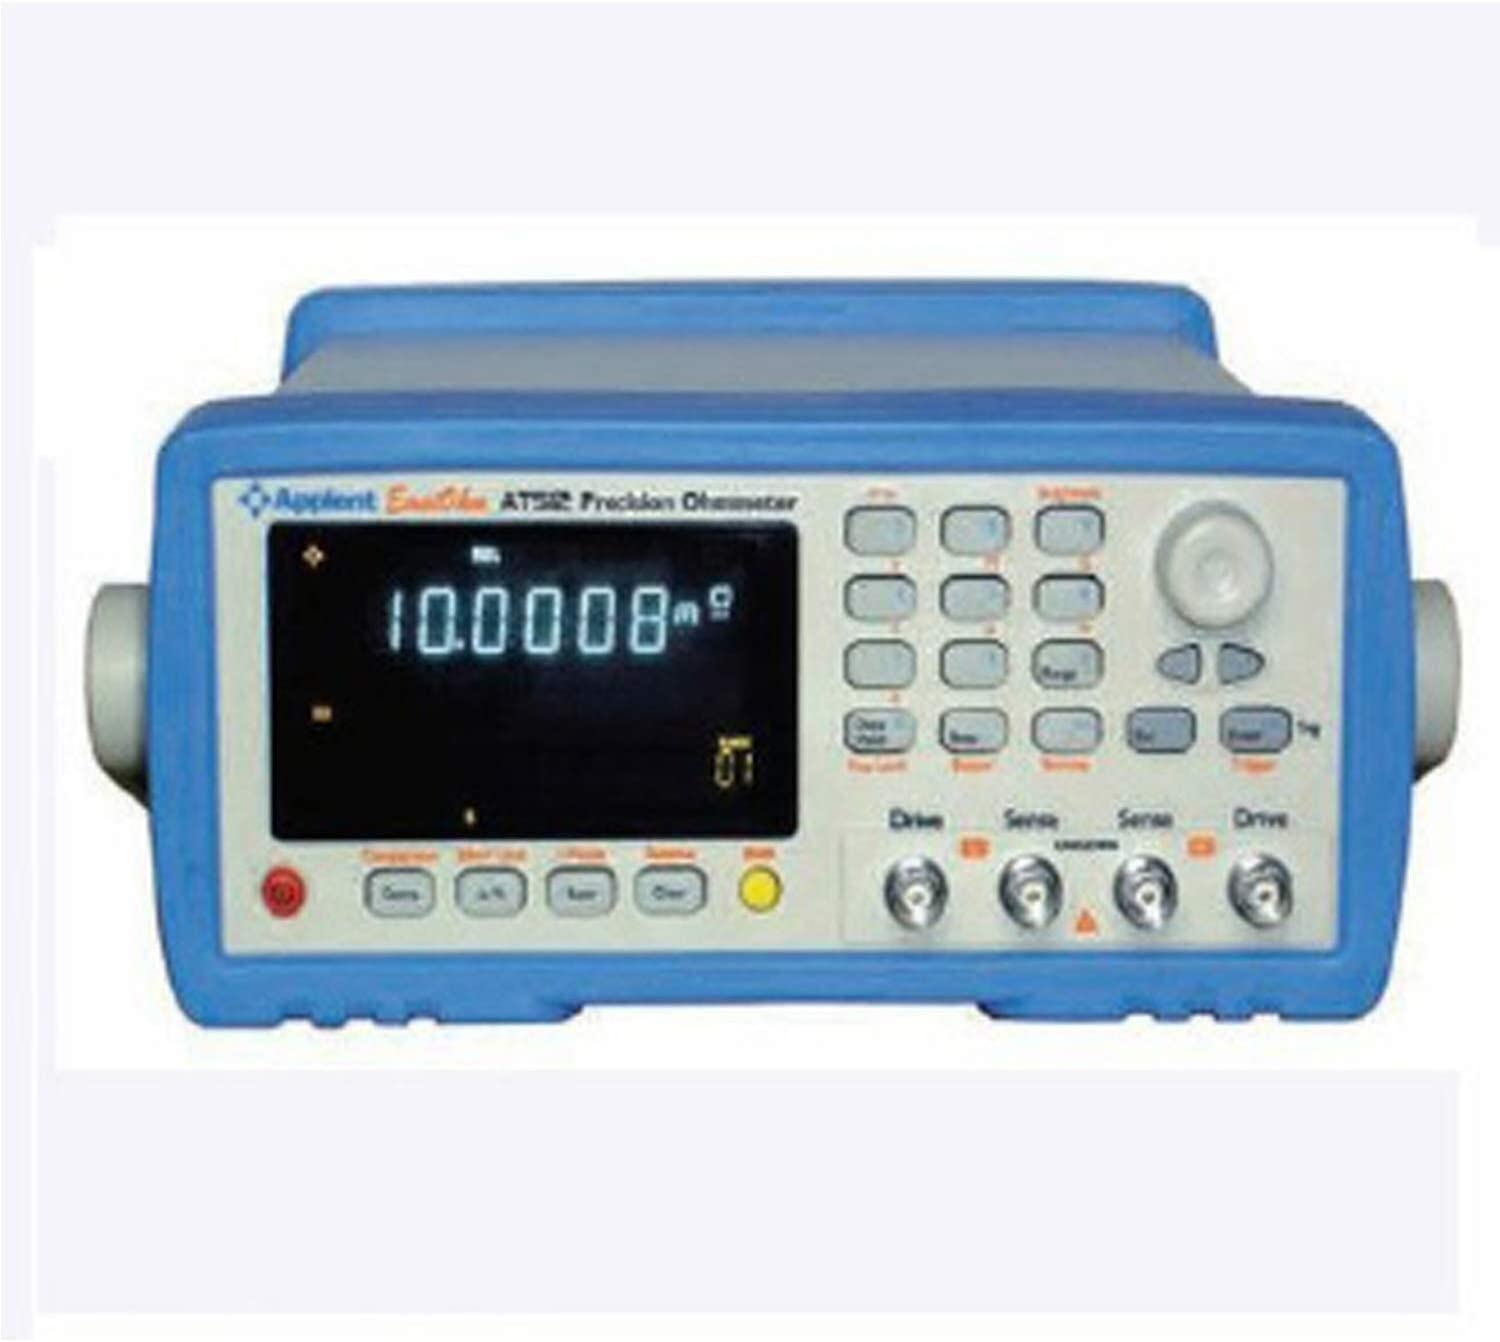 LIMEI-ZEN Precise instrument AT512 High-precision DC Resistance Meter Low Micro Ohm Meter Tester 0.1u-110M Ohm with RS232 Handler Comparator Resistance Tester